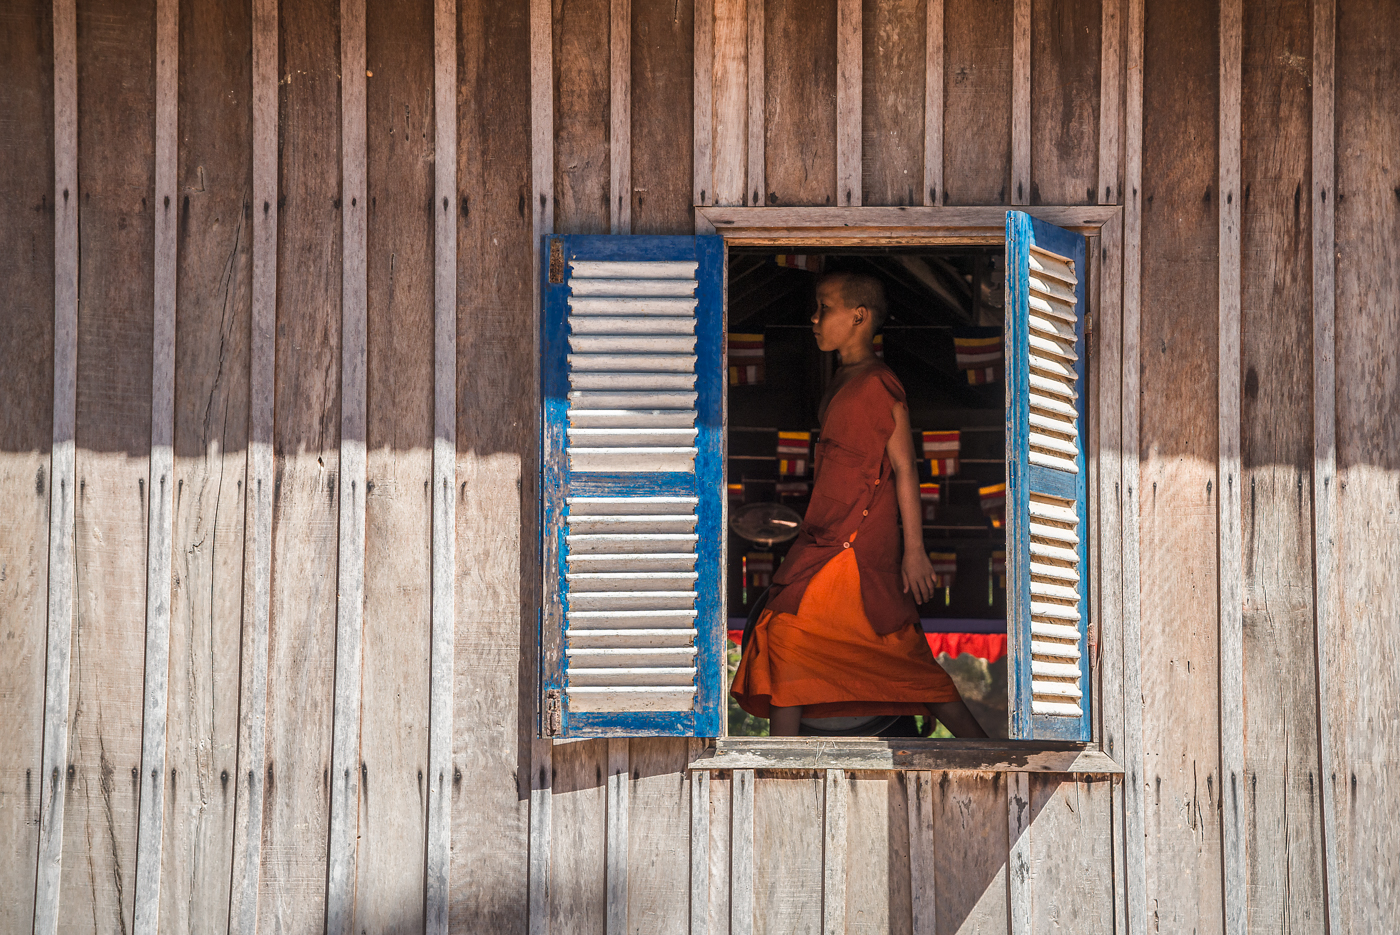 A young monk strides past the window of the monastery where he resides in the remote Cambodian countryside.